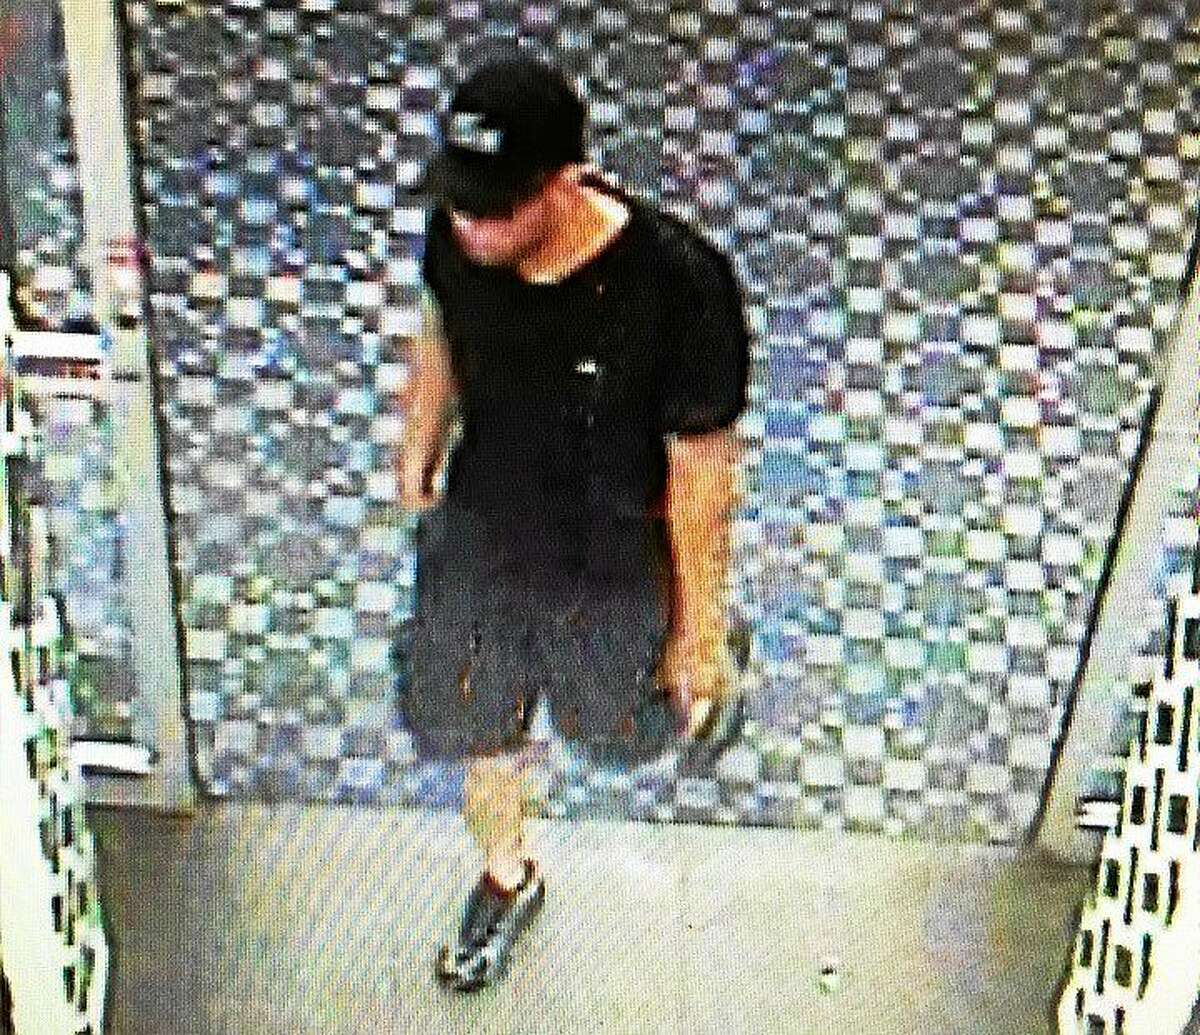 Police in Clinton are looking for a man who used a stolen credit card to make more than $2,000 in purchases at stores in Clinton and Waterford. Police said the suspect's vehicle appears to be a white Suzuki Kizashi sedan.